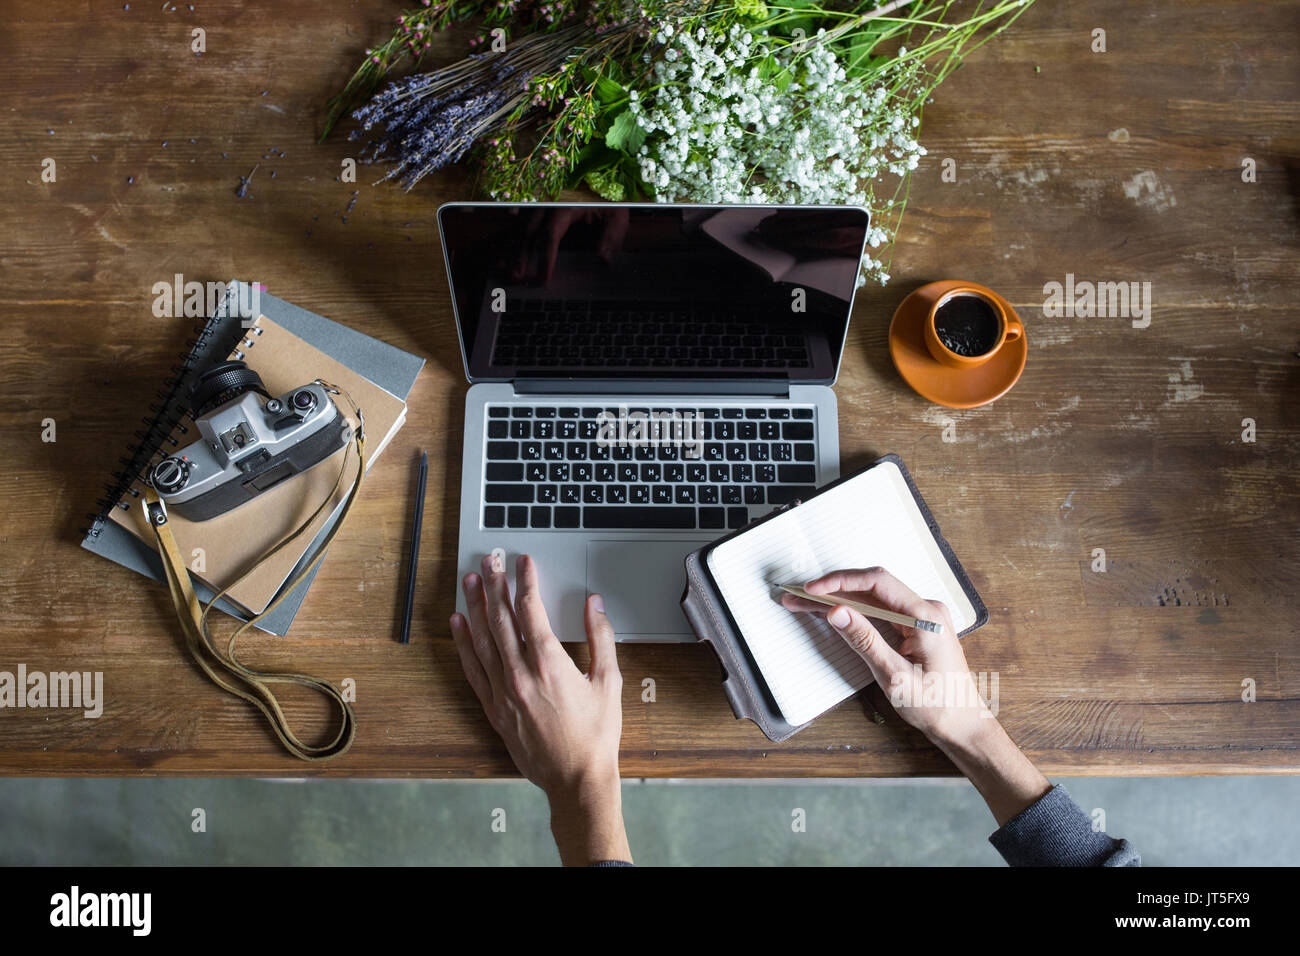 person using laptop and graphic tablet at workspace with notebooks and vintage camera - Stock Image